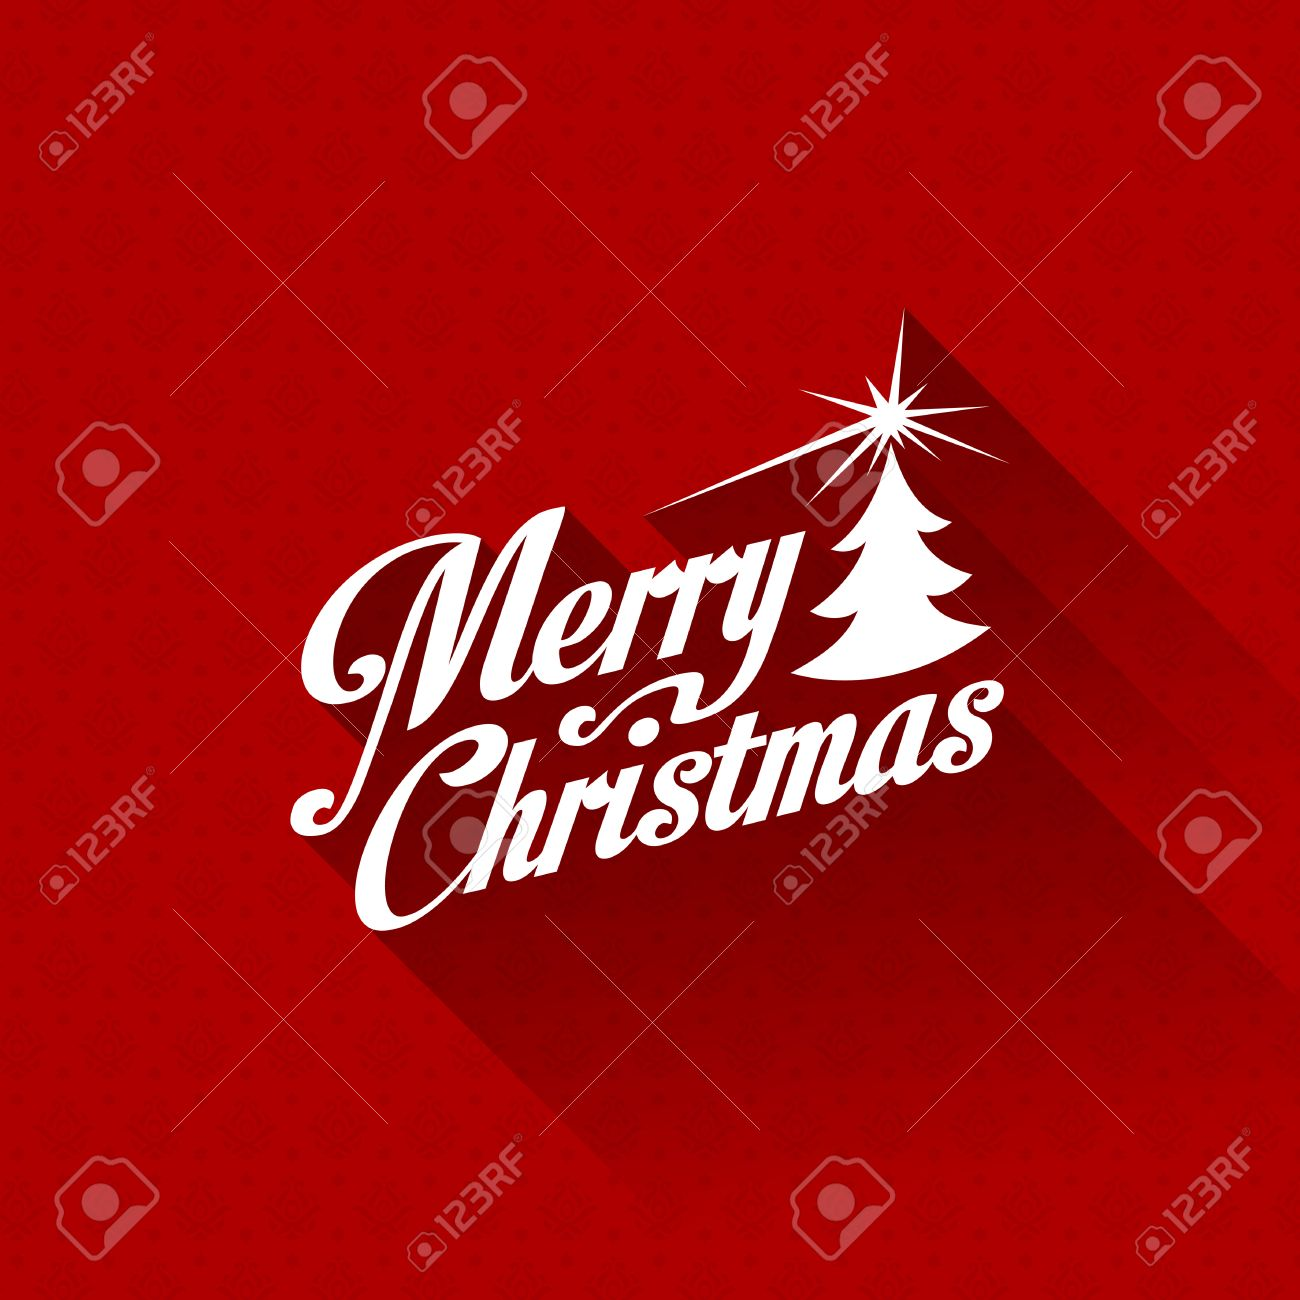 Elegant Merry Christmas Greeting Card Vector Design Template Trendy Retro Creative  Style Red Vintage Seamless Pattern On